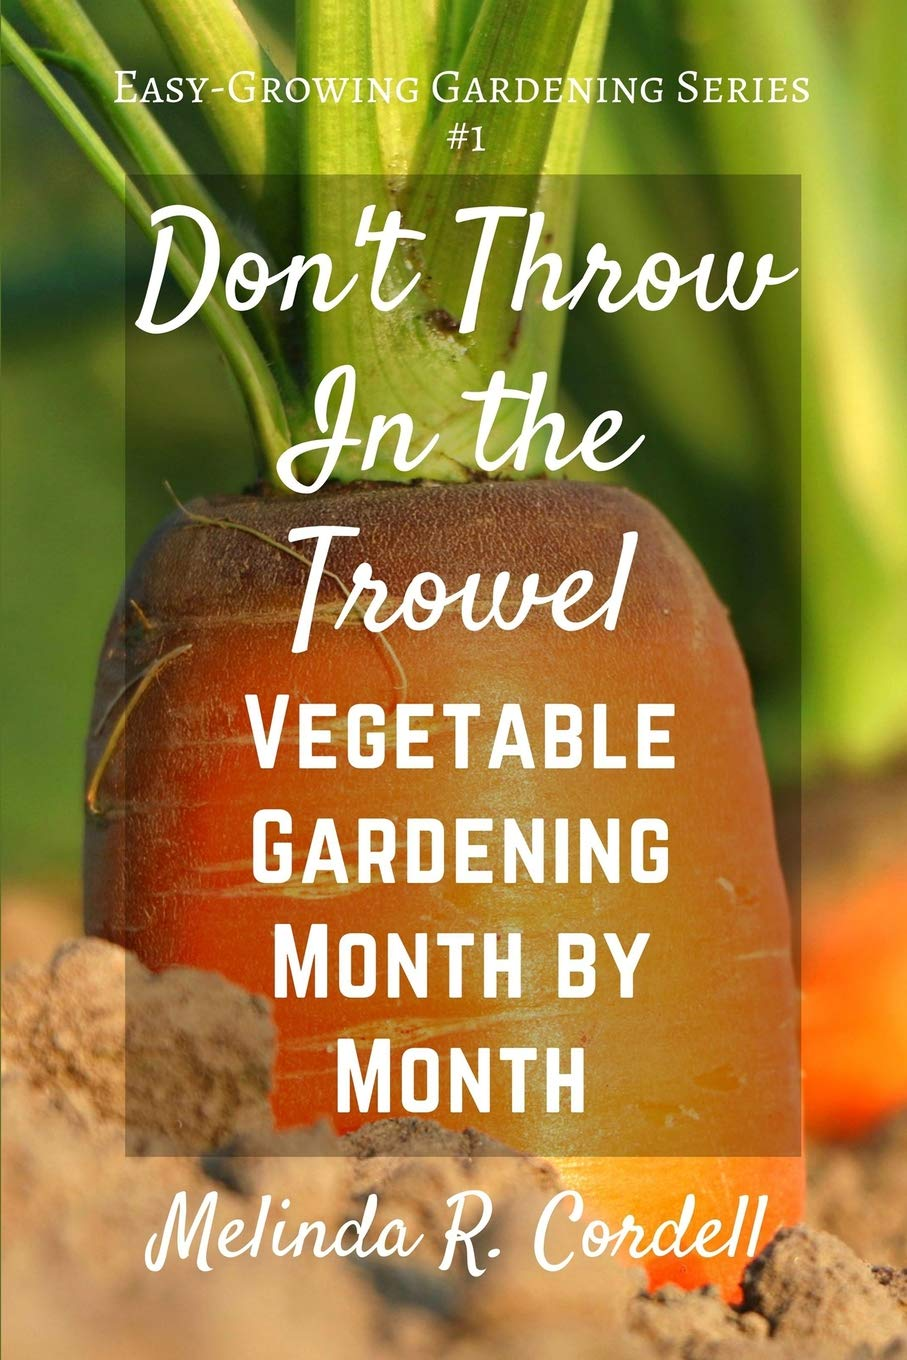 Dont Throw Trowel Vegetable Easy Growing product image